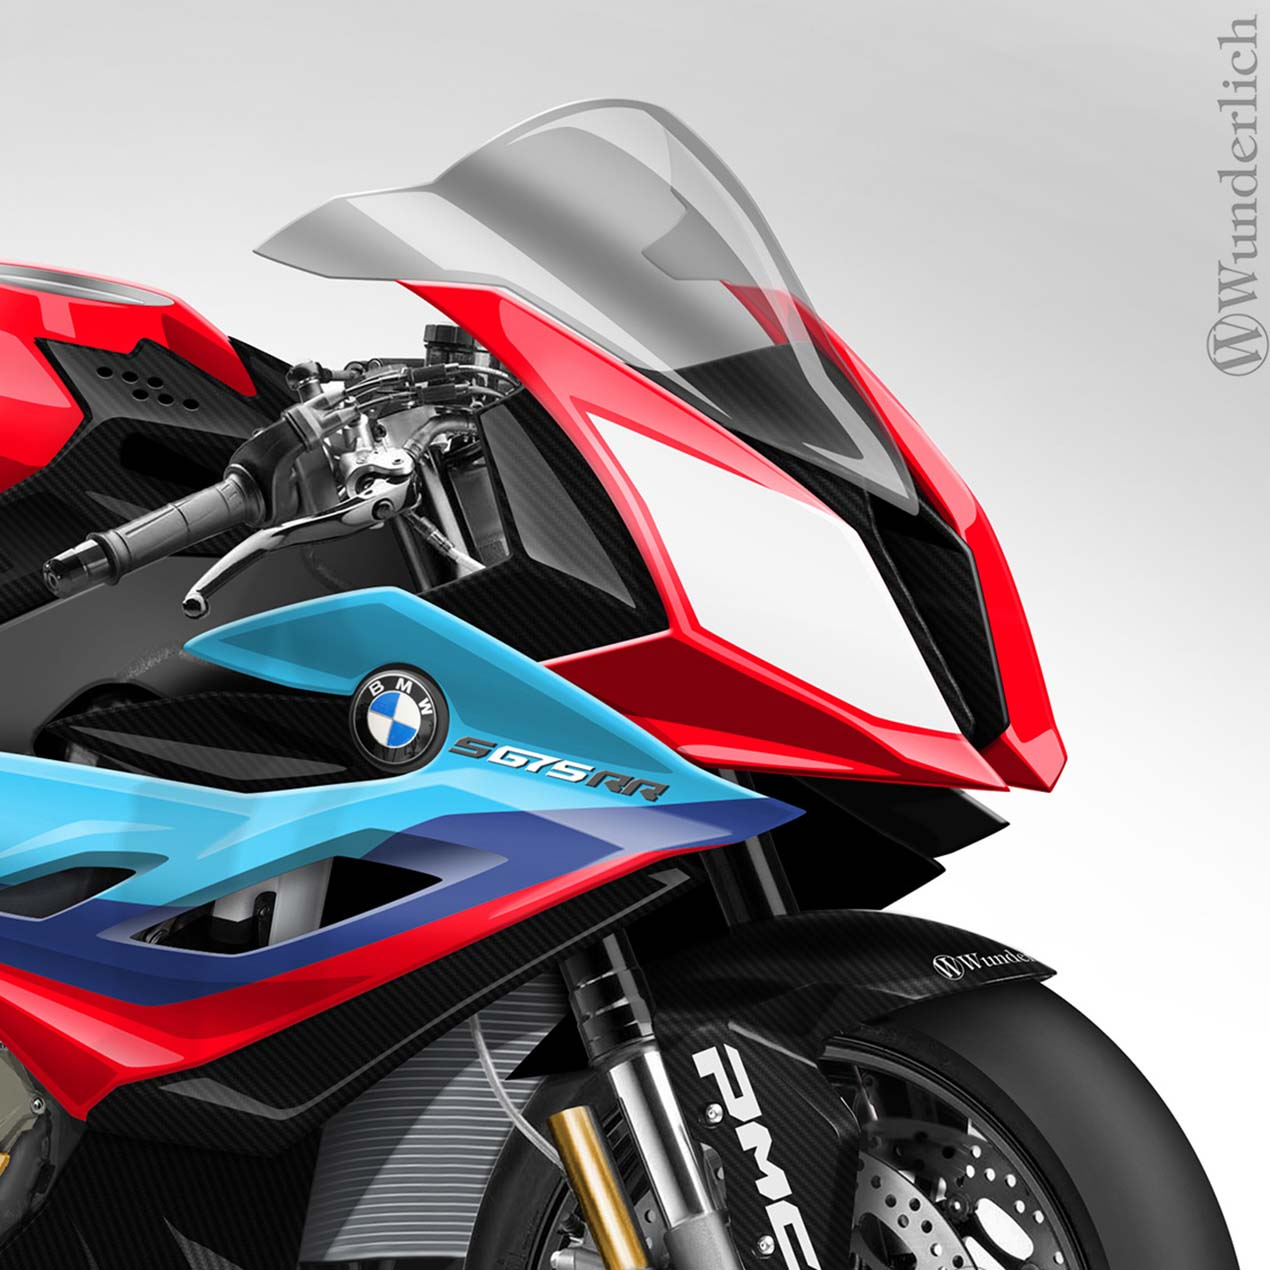 Bmw Plans To Launch Nine New Motorcycles Asphalt Rubber